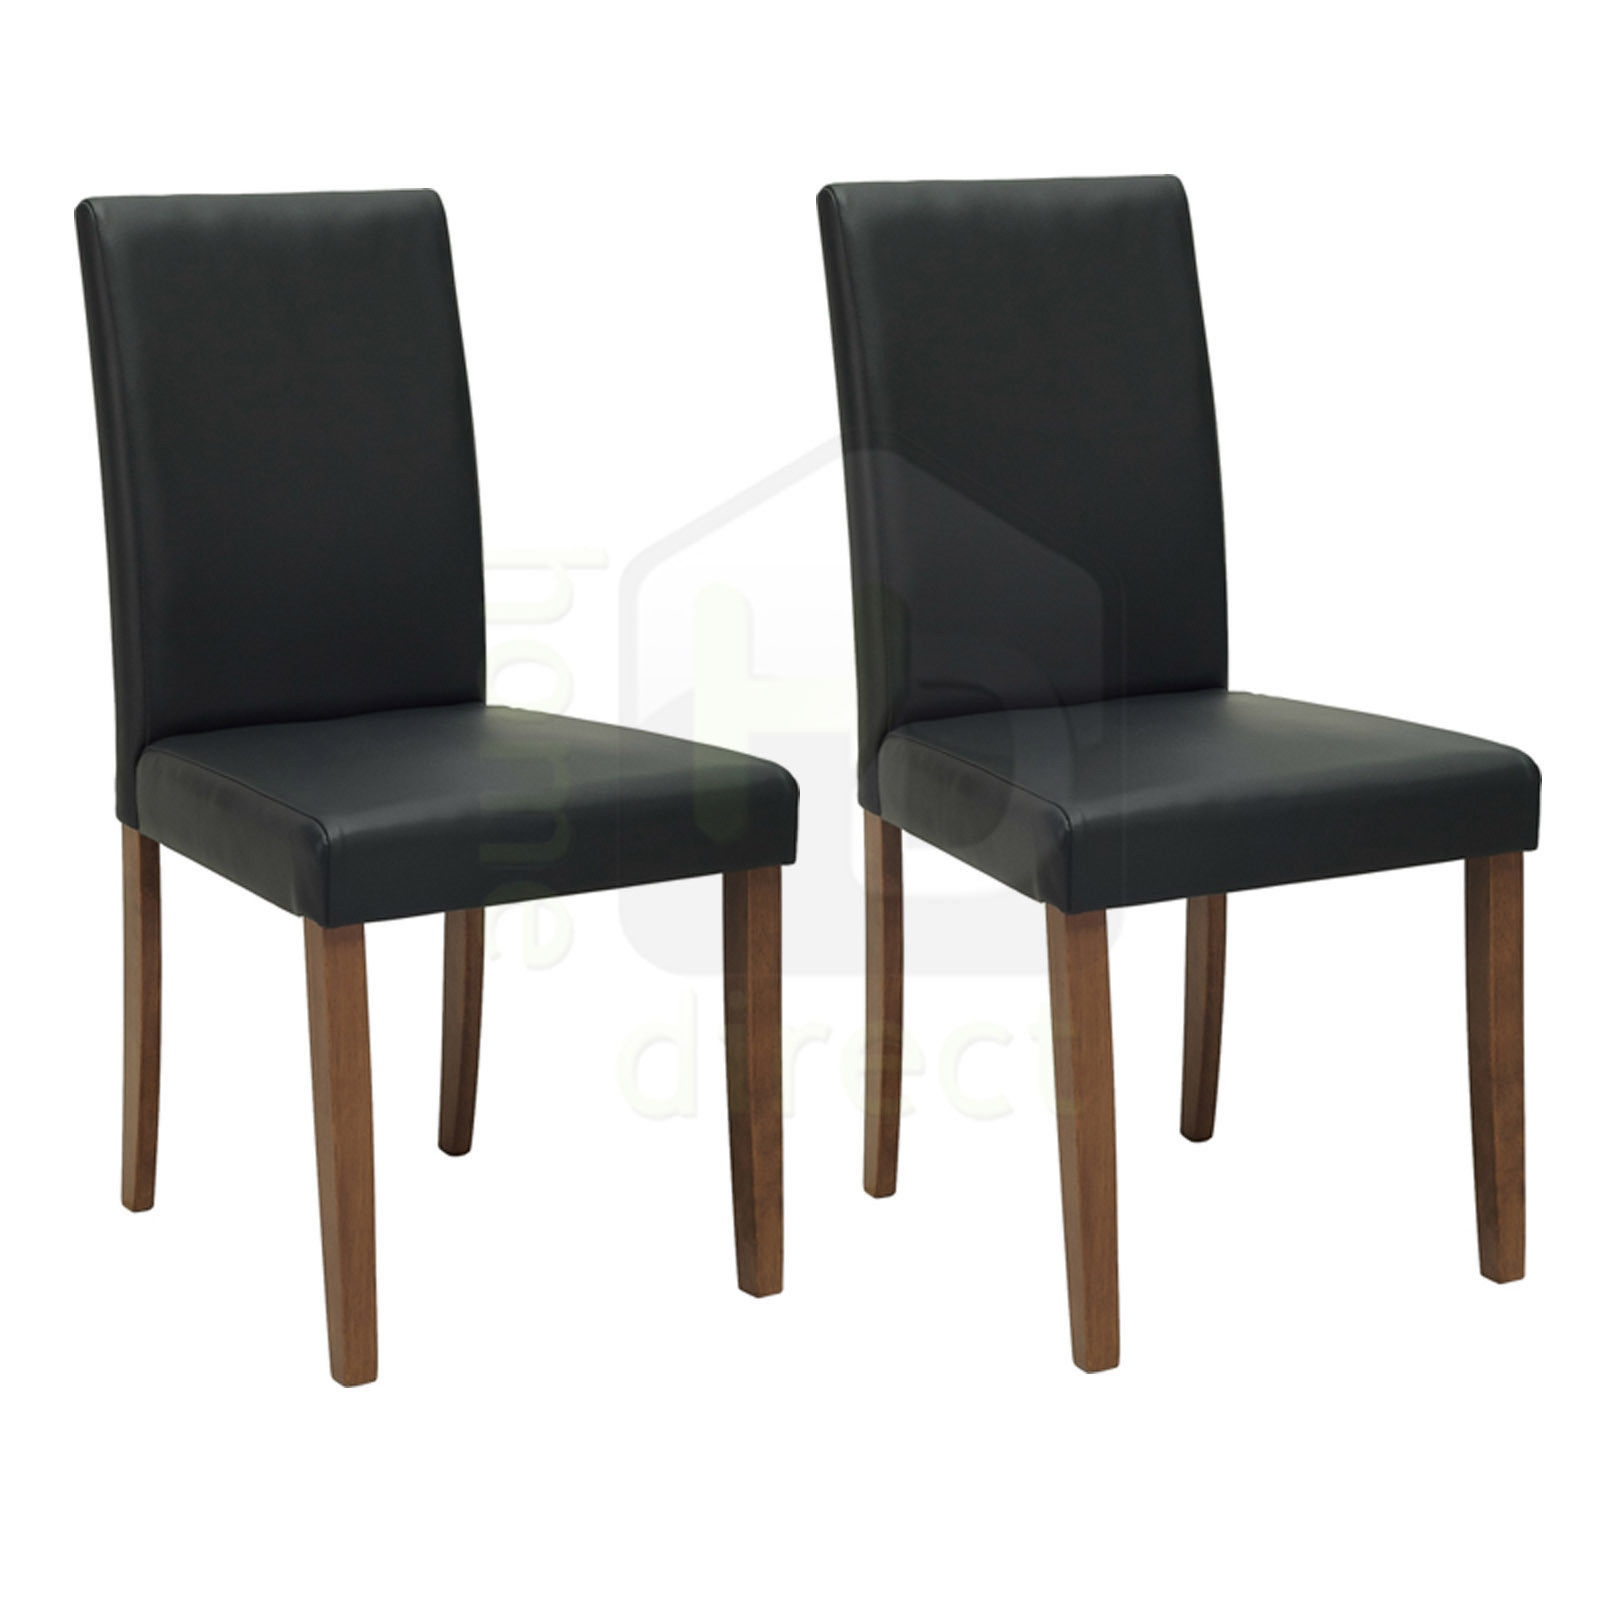 2x lenore modern danish fabric scandinavian retro lounge dining chair